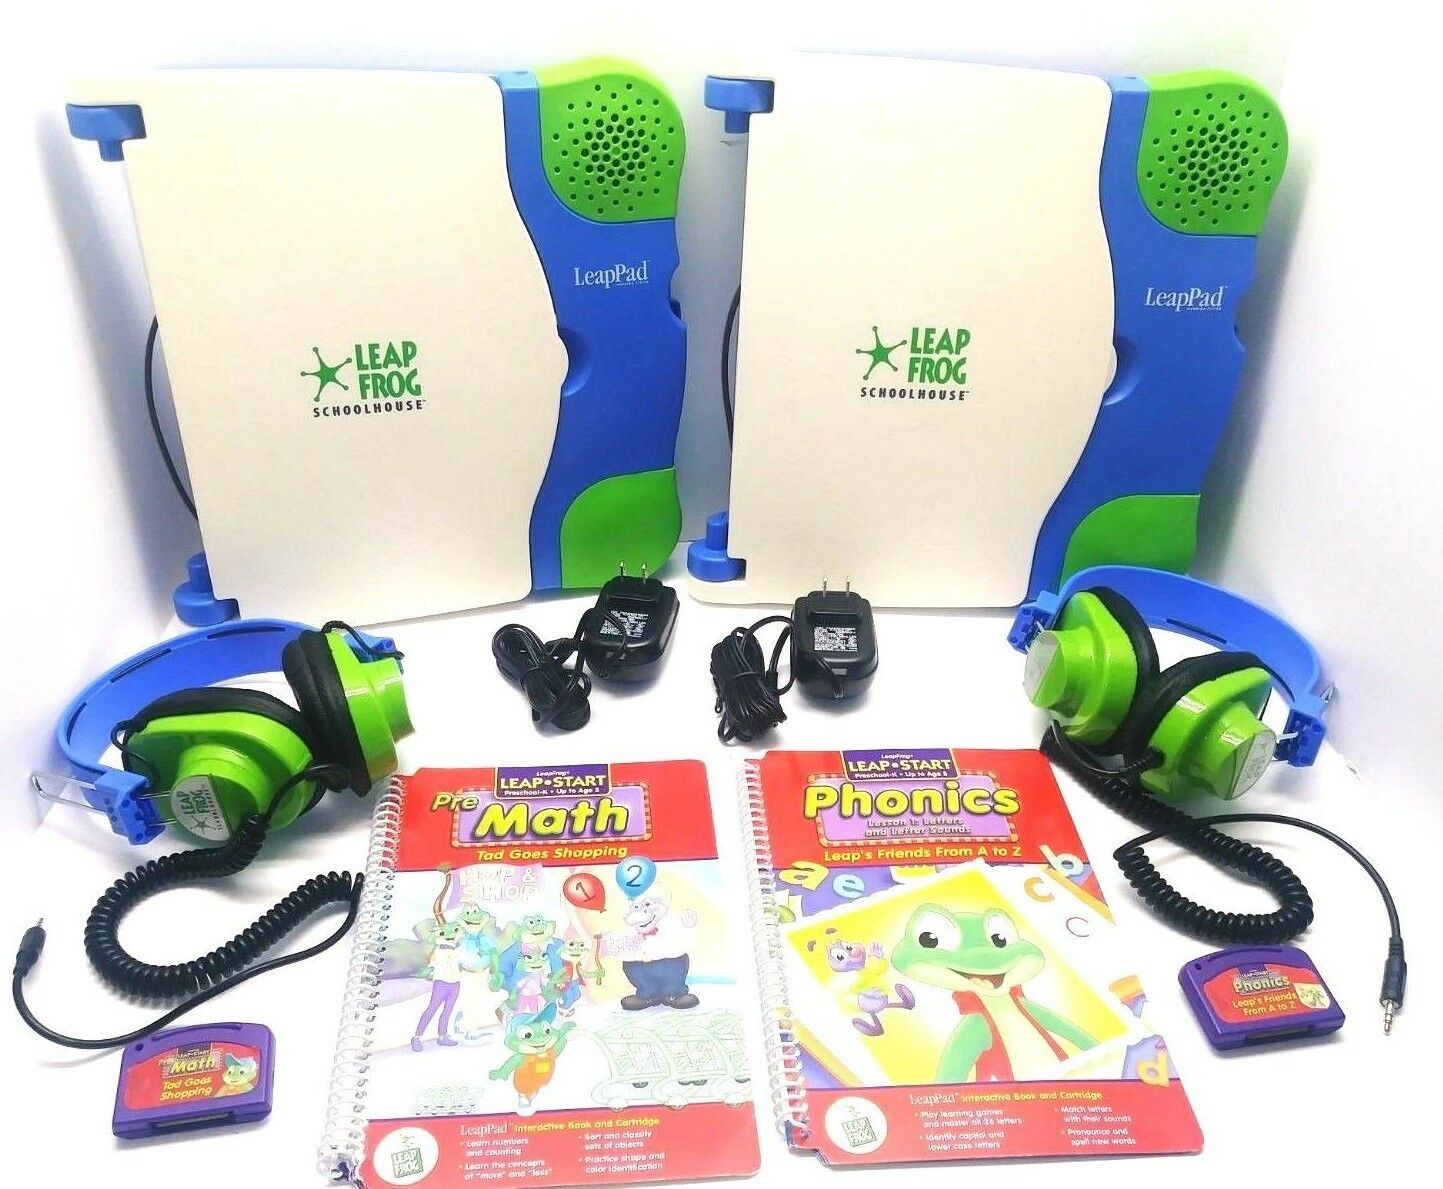 Leap Frog School House LeapPad Learning System w Headphones and Chargers- 2 SETS